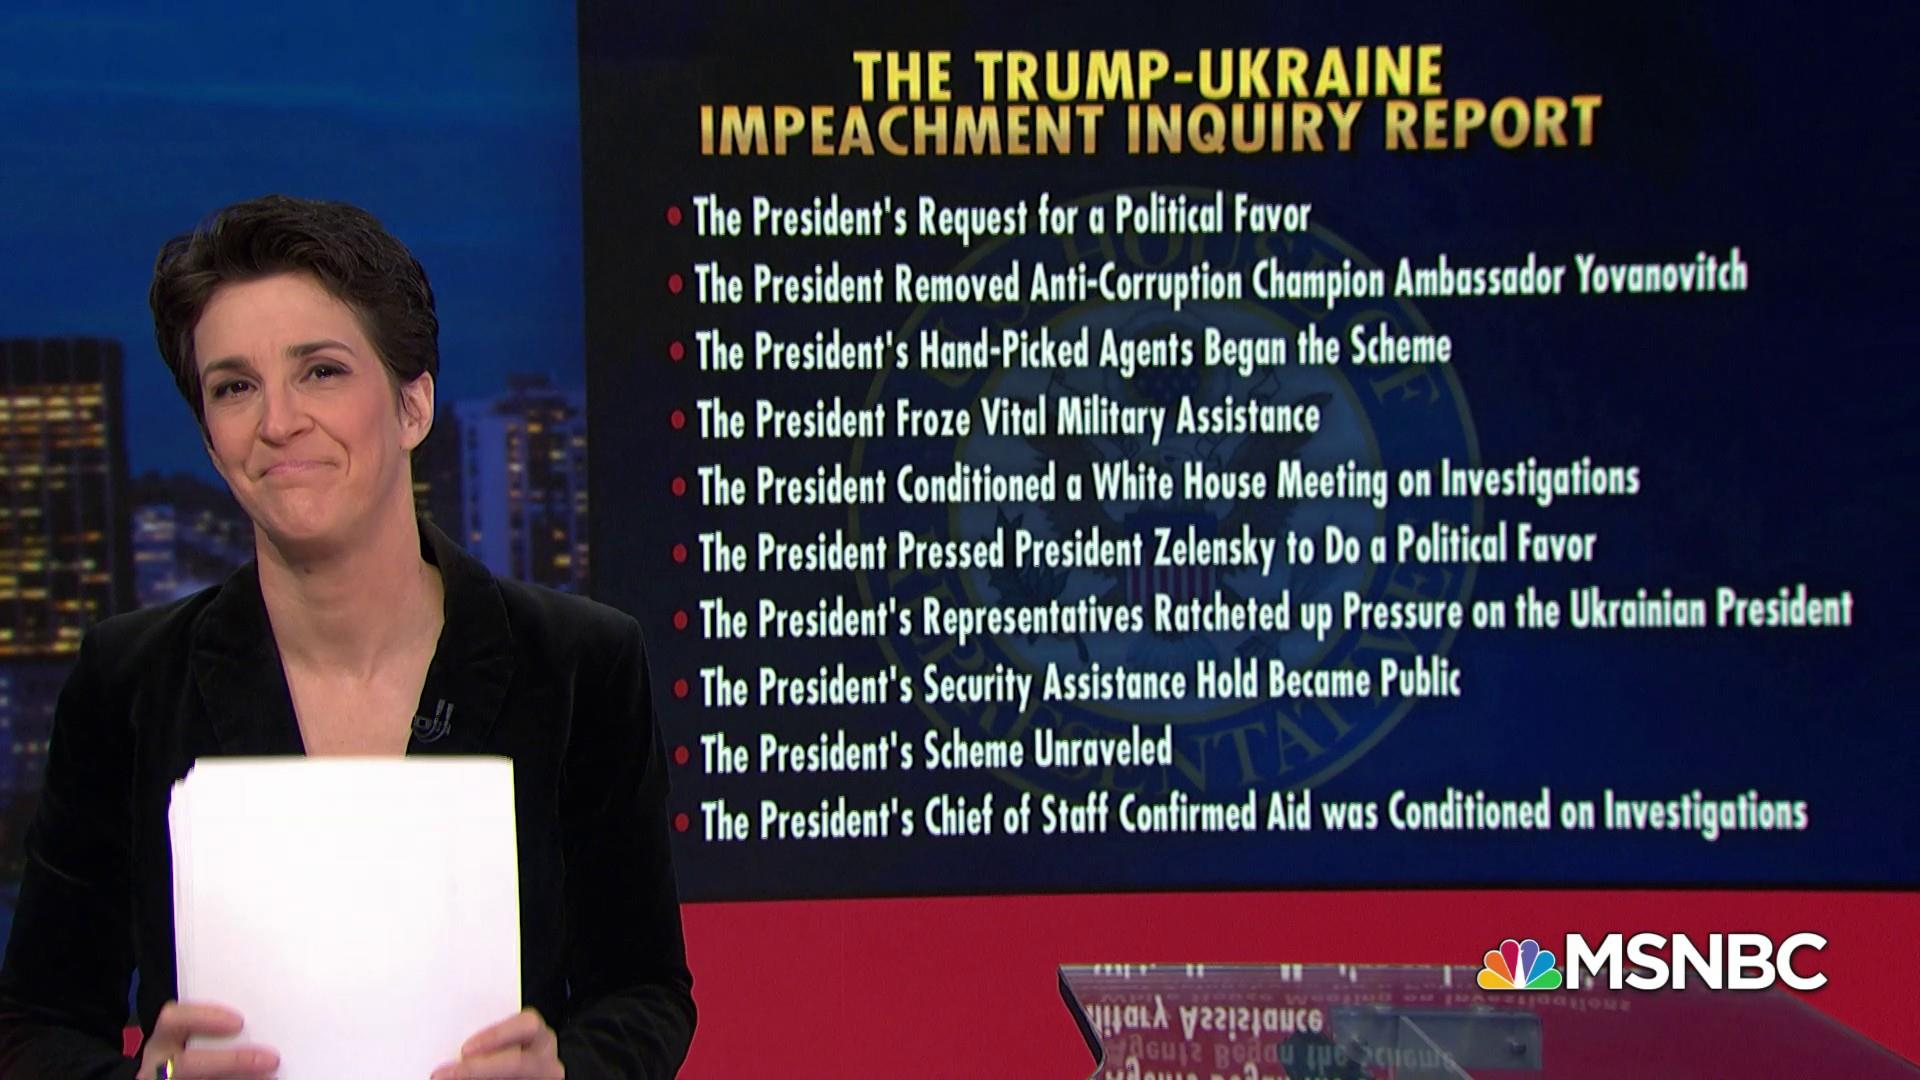 The fastest, easiest way to understand the impeachment report